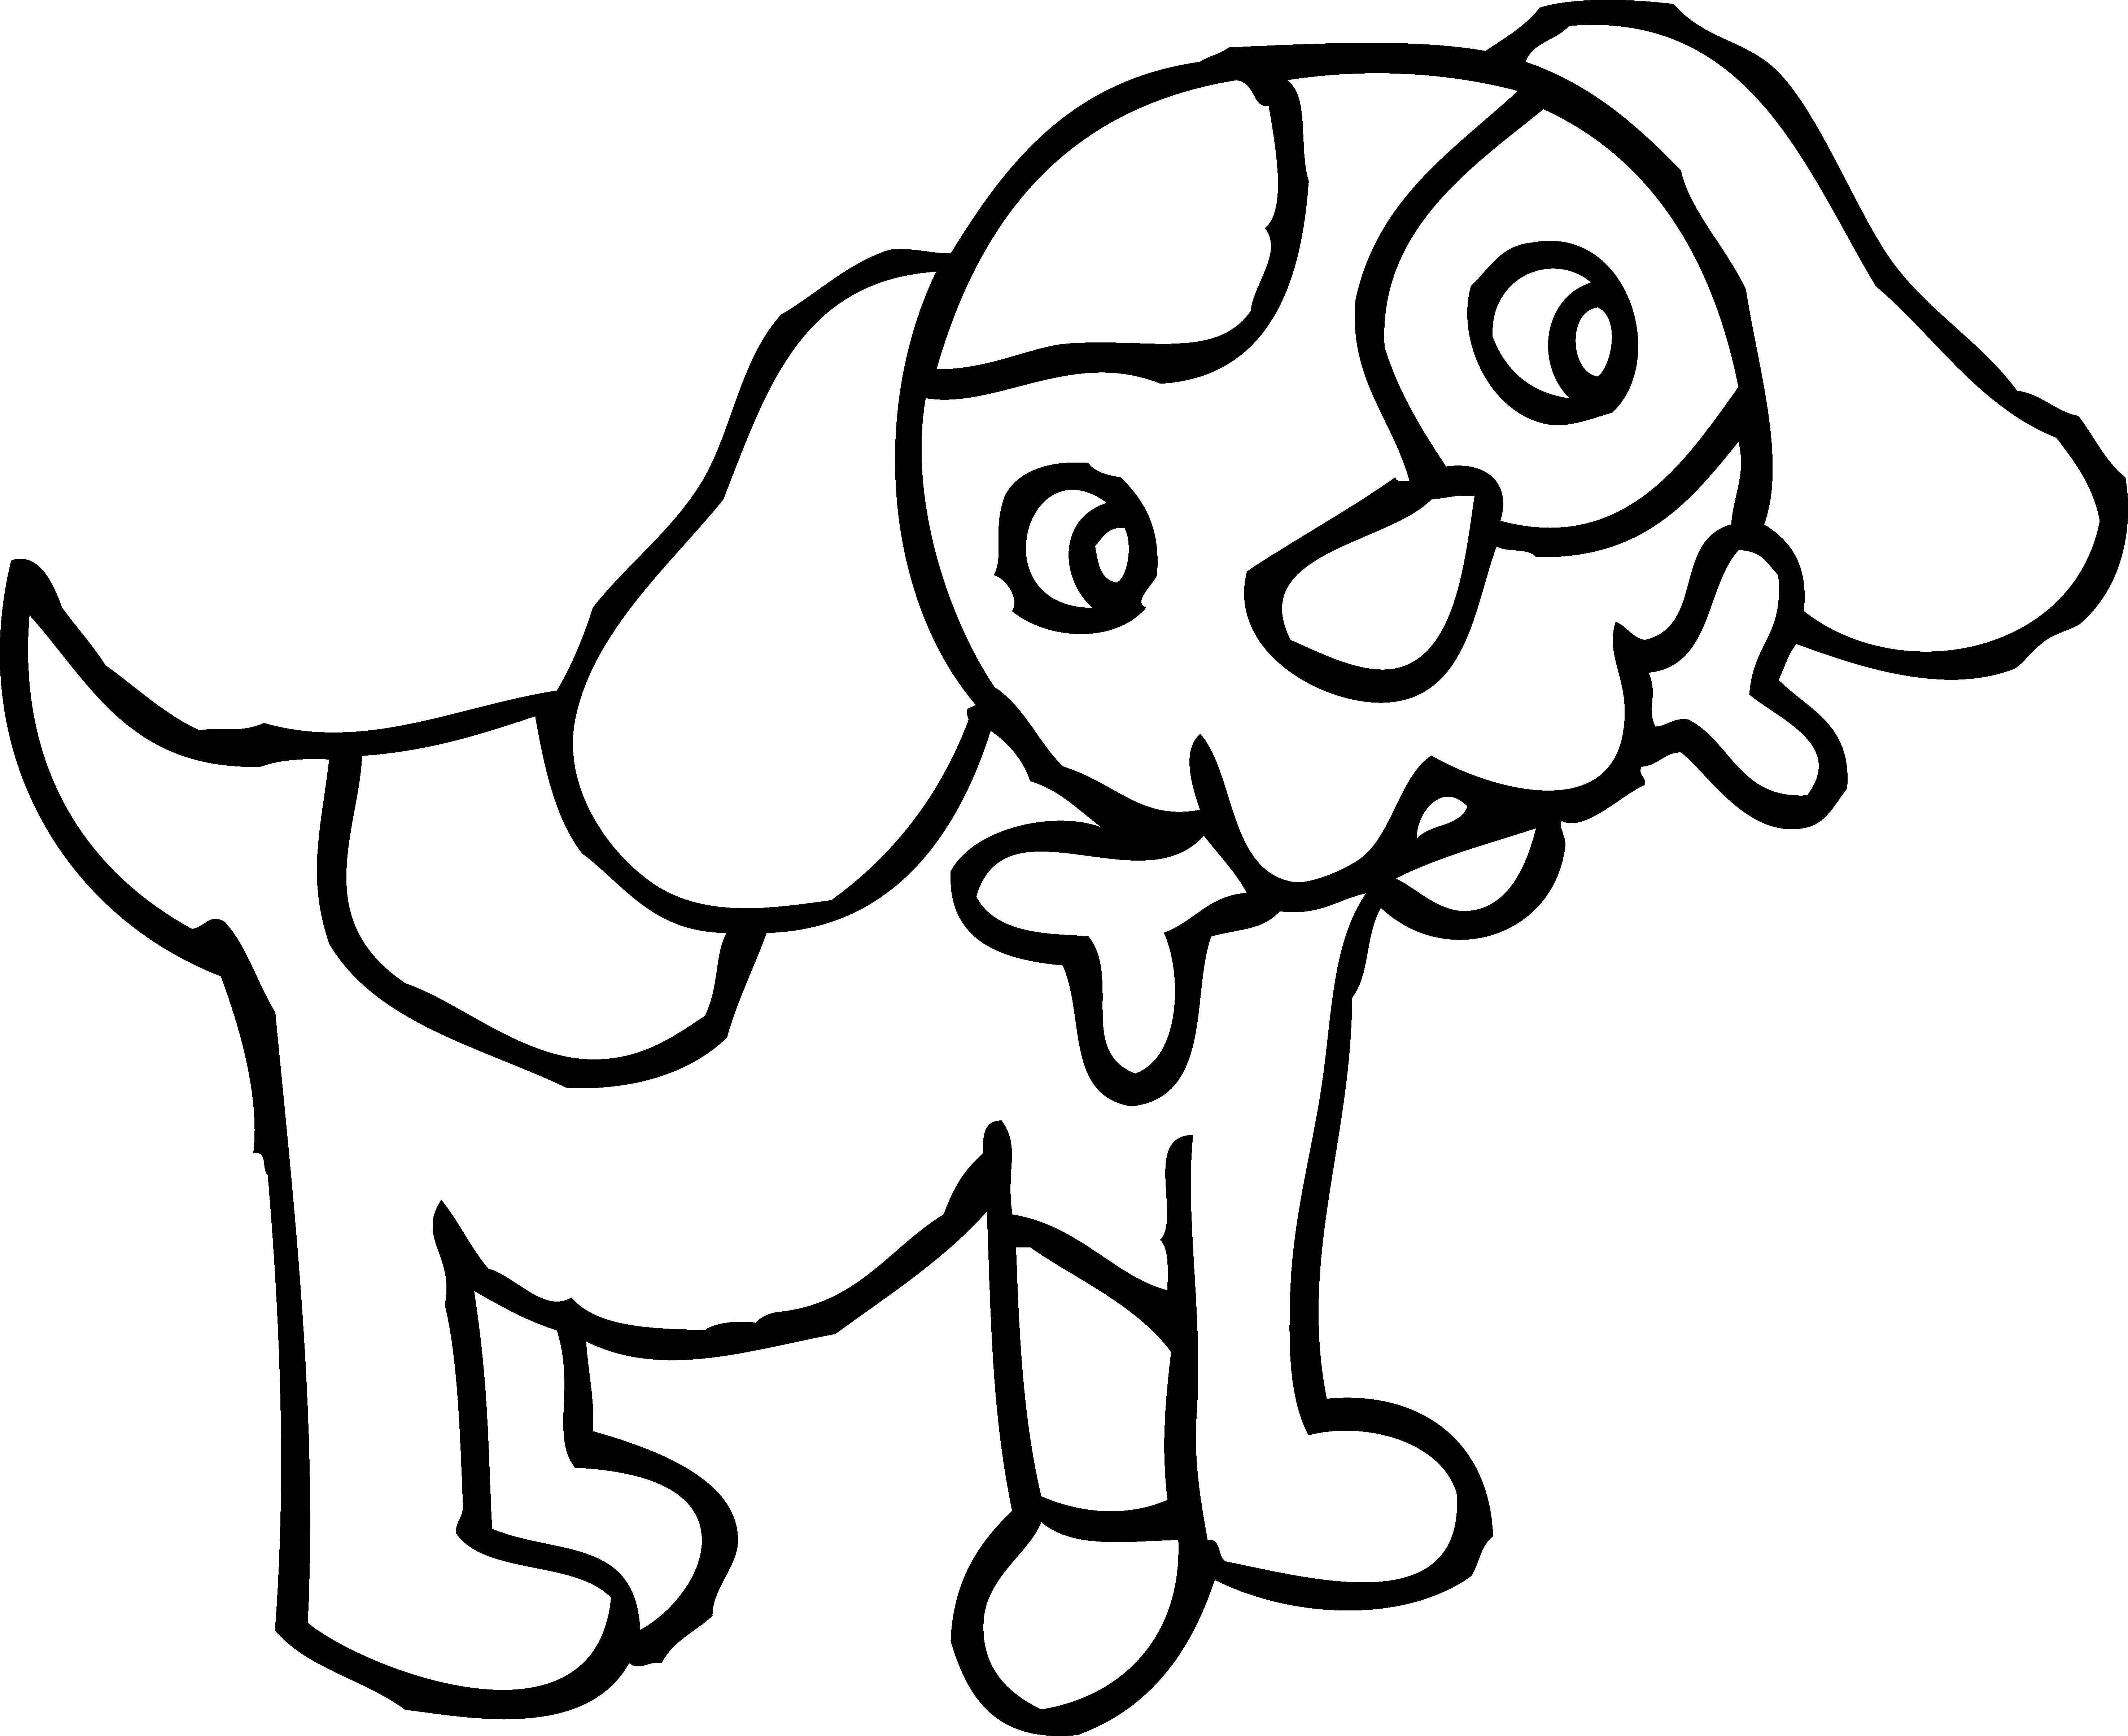 Elephants clipart dog. Outline drawing at getdrawings